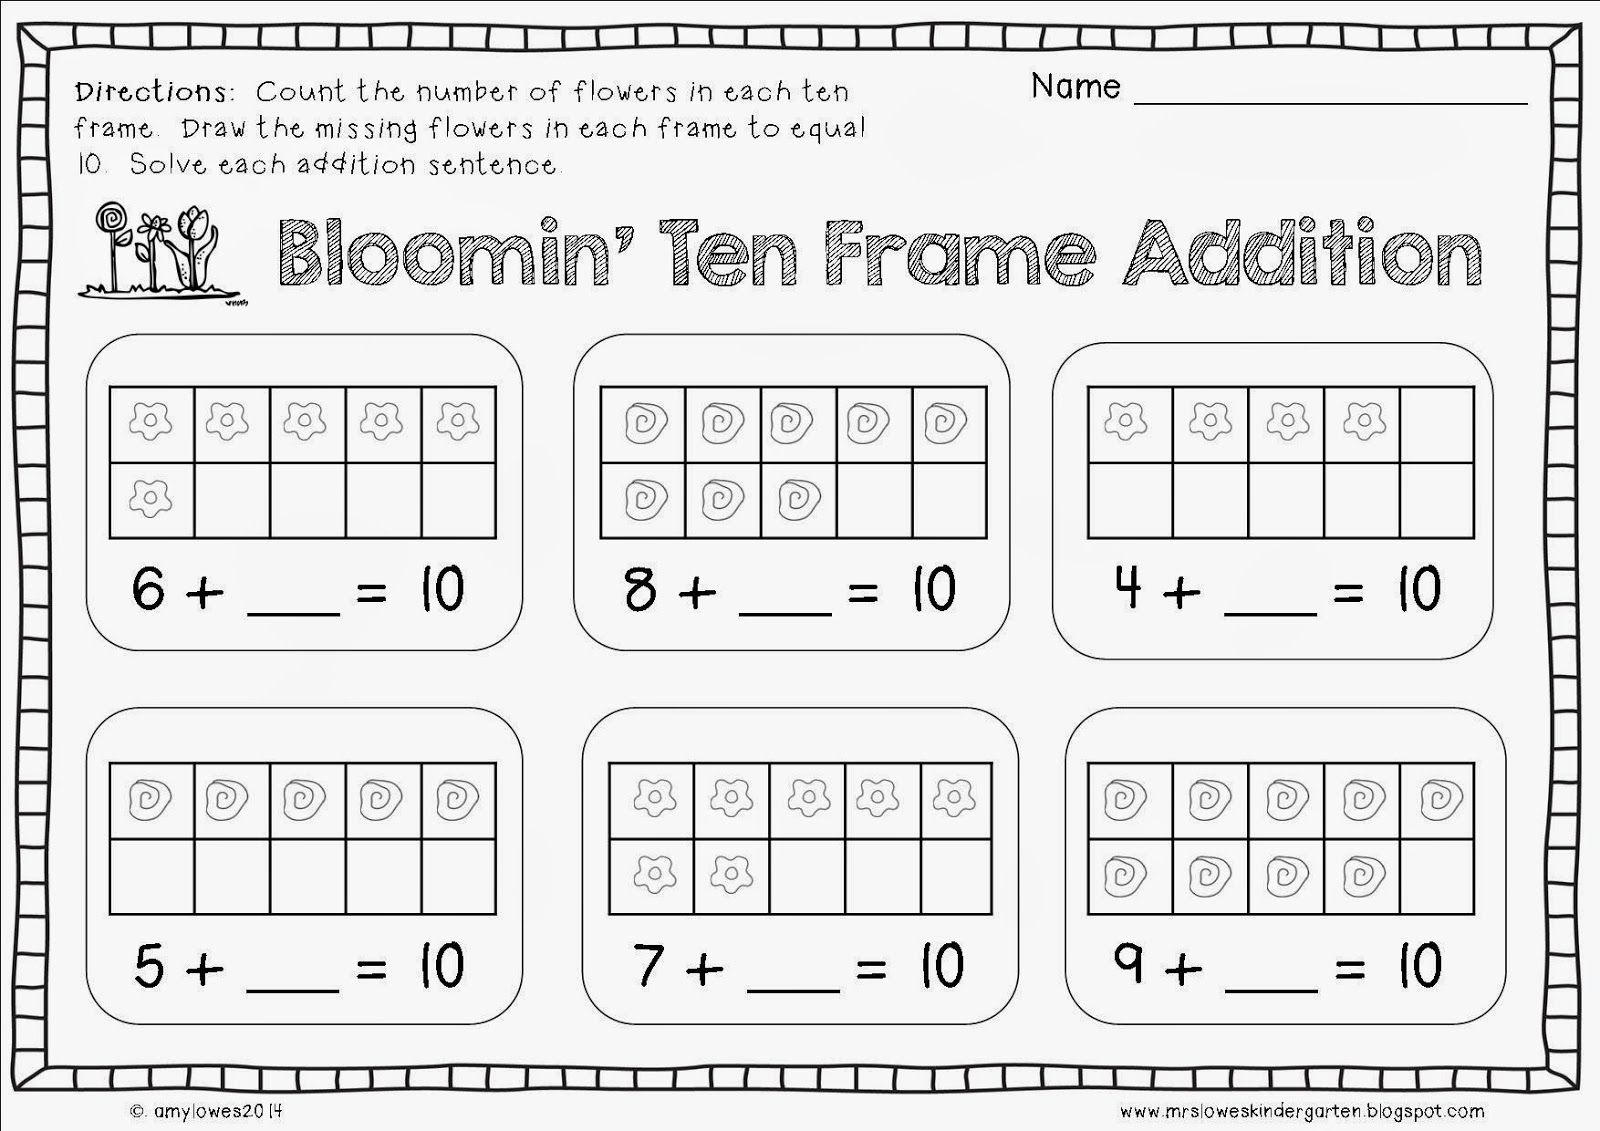 Bloomin Ten Frame Addition